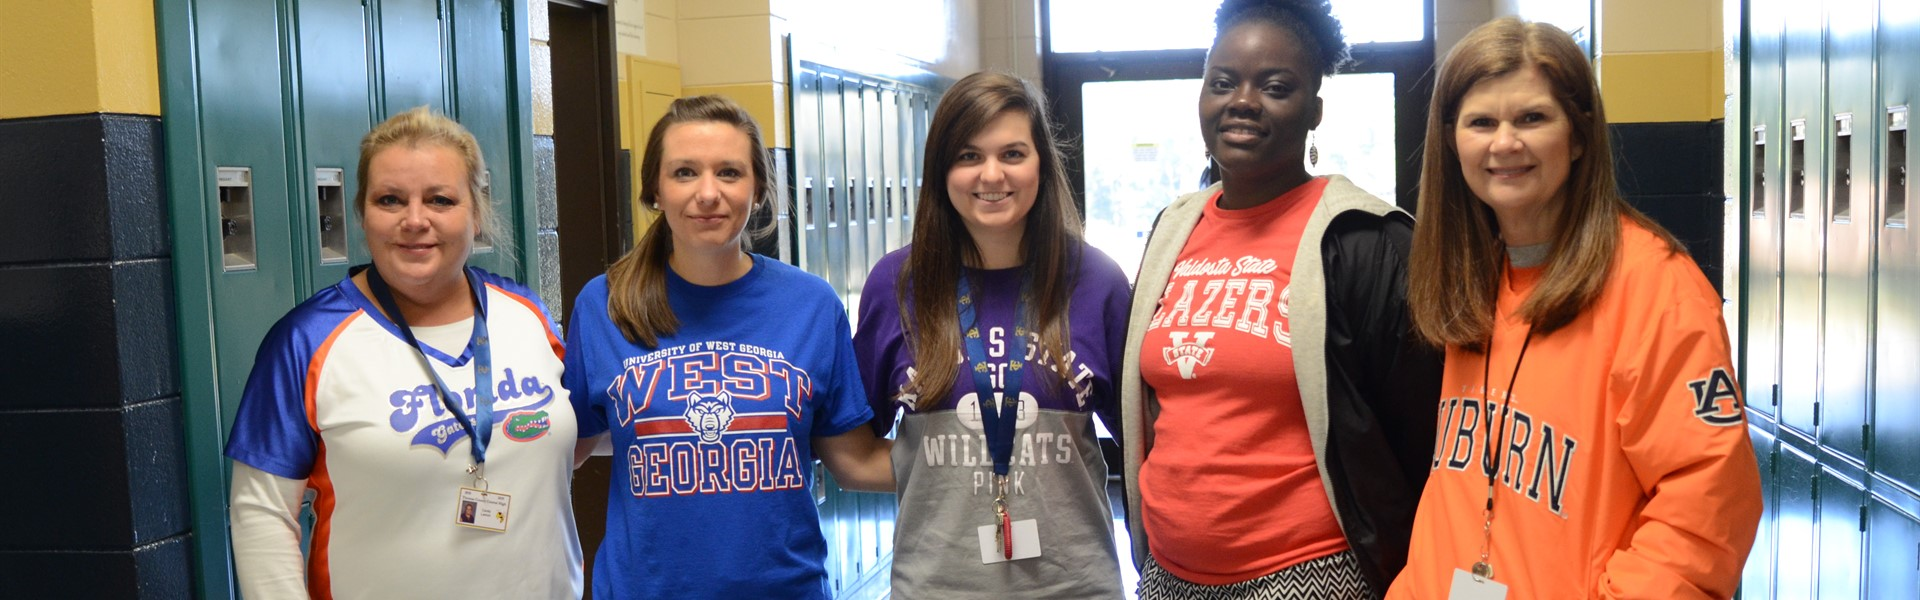 Teachers on College Awareness Day.